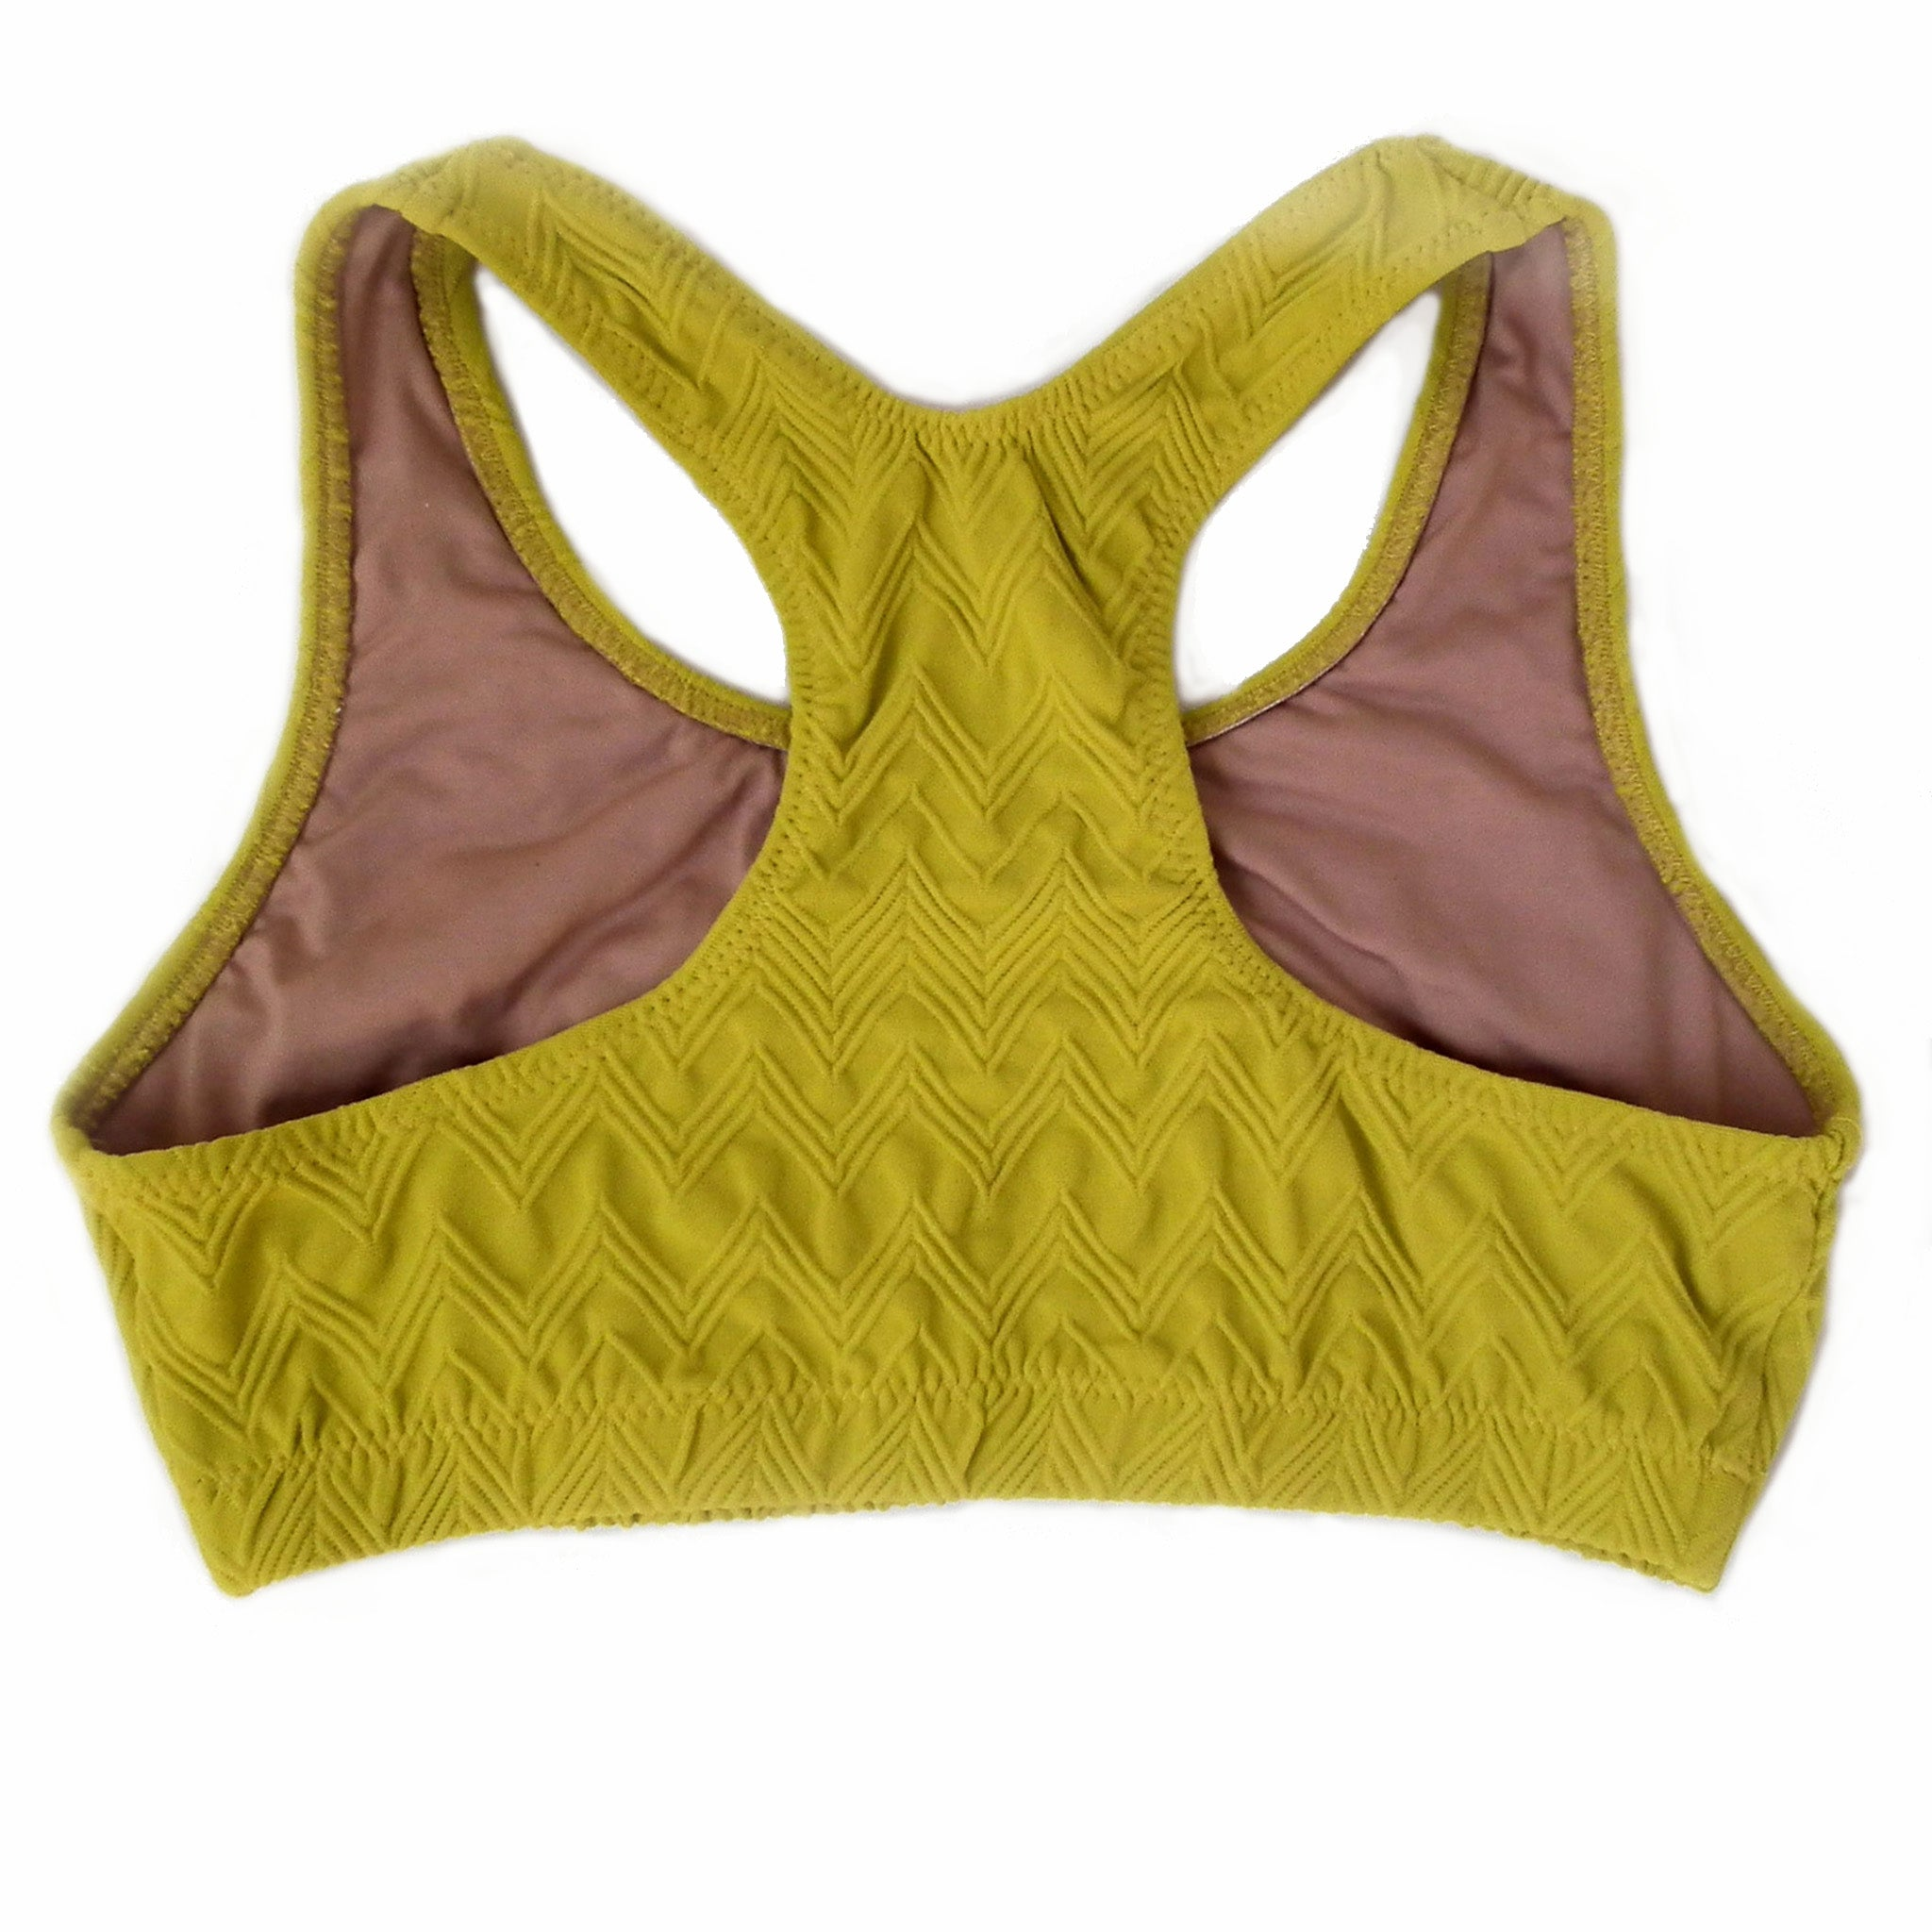 SPORTSBRAS PDF Sewing Pattern